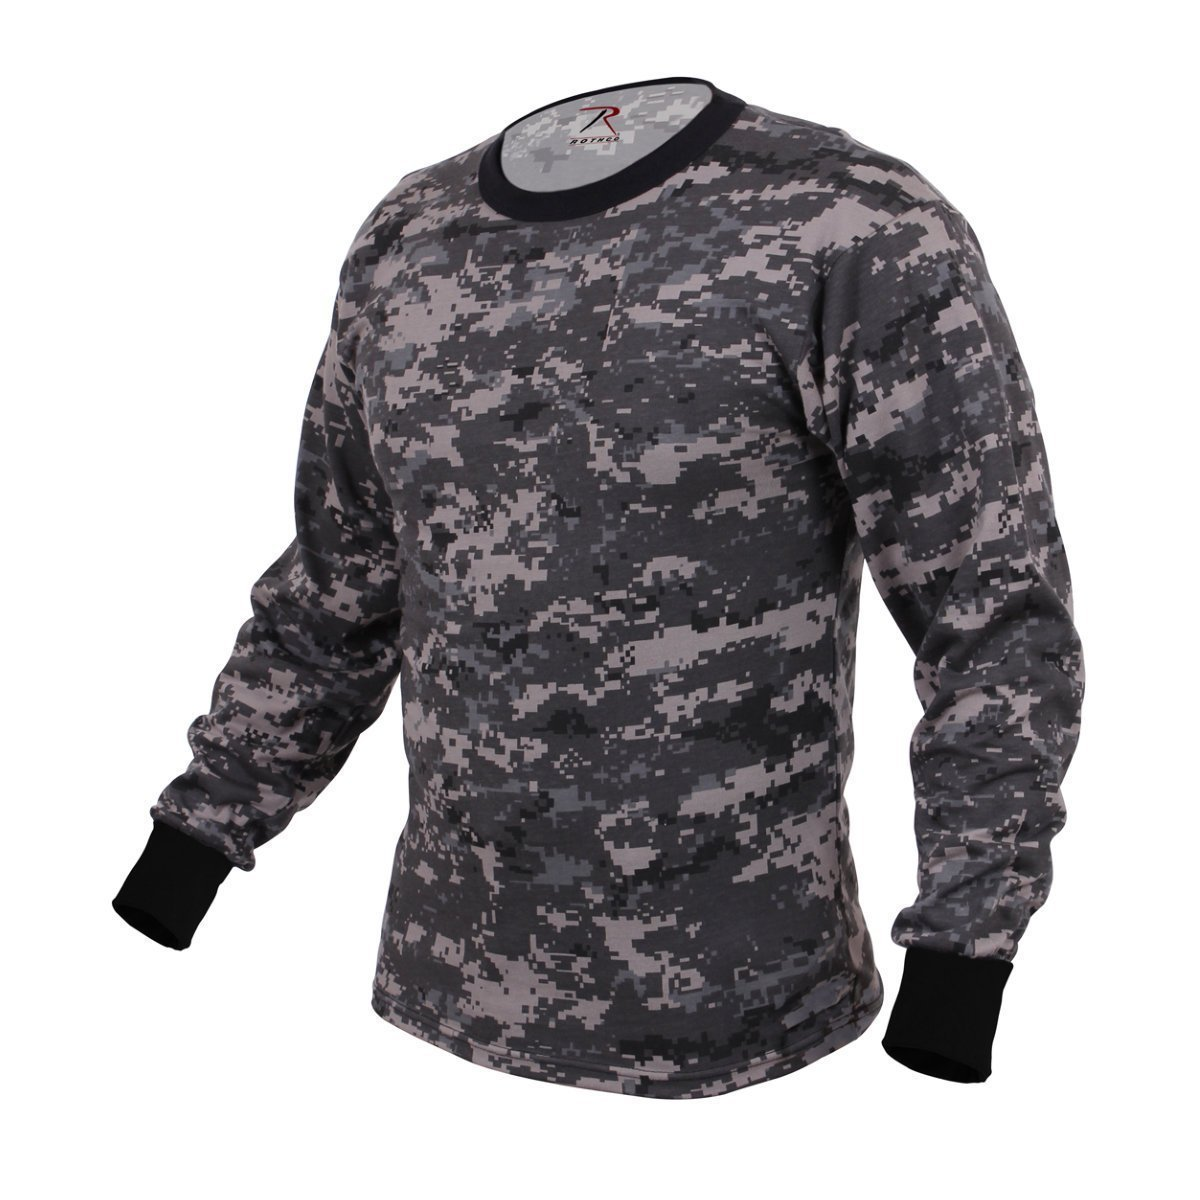 Rothco Long Sleeve Digital Camo T-Shirts, Subdued Urban Digital Camo - 3X Large RSR Group Inc 67782